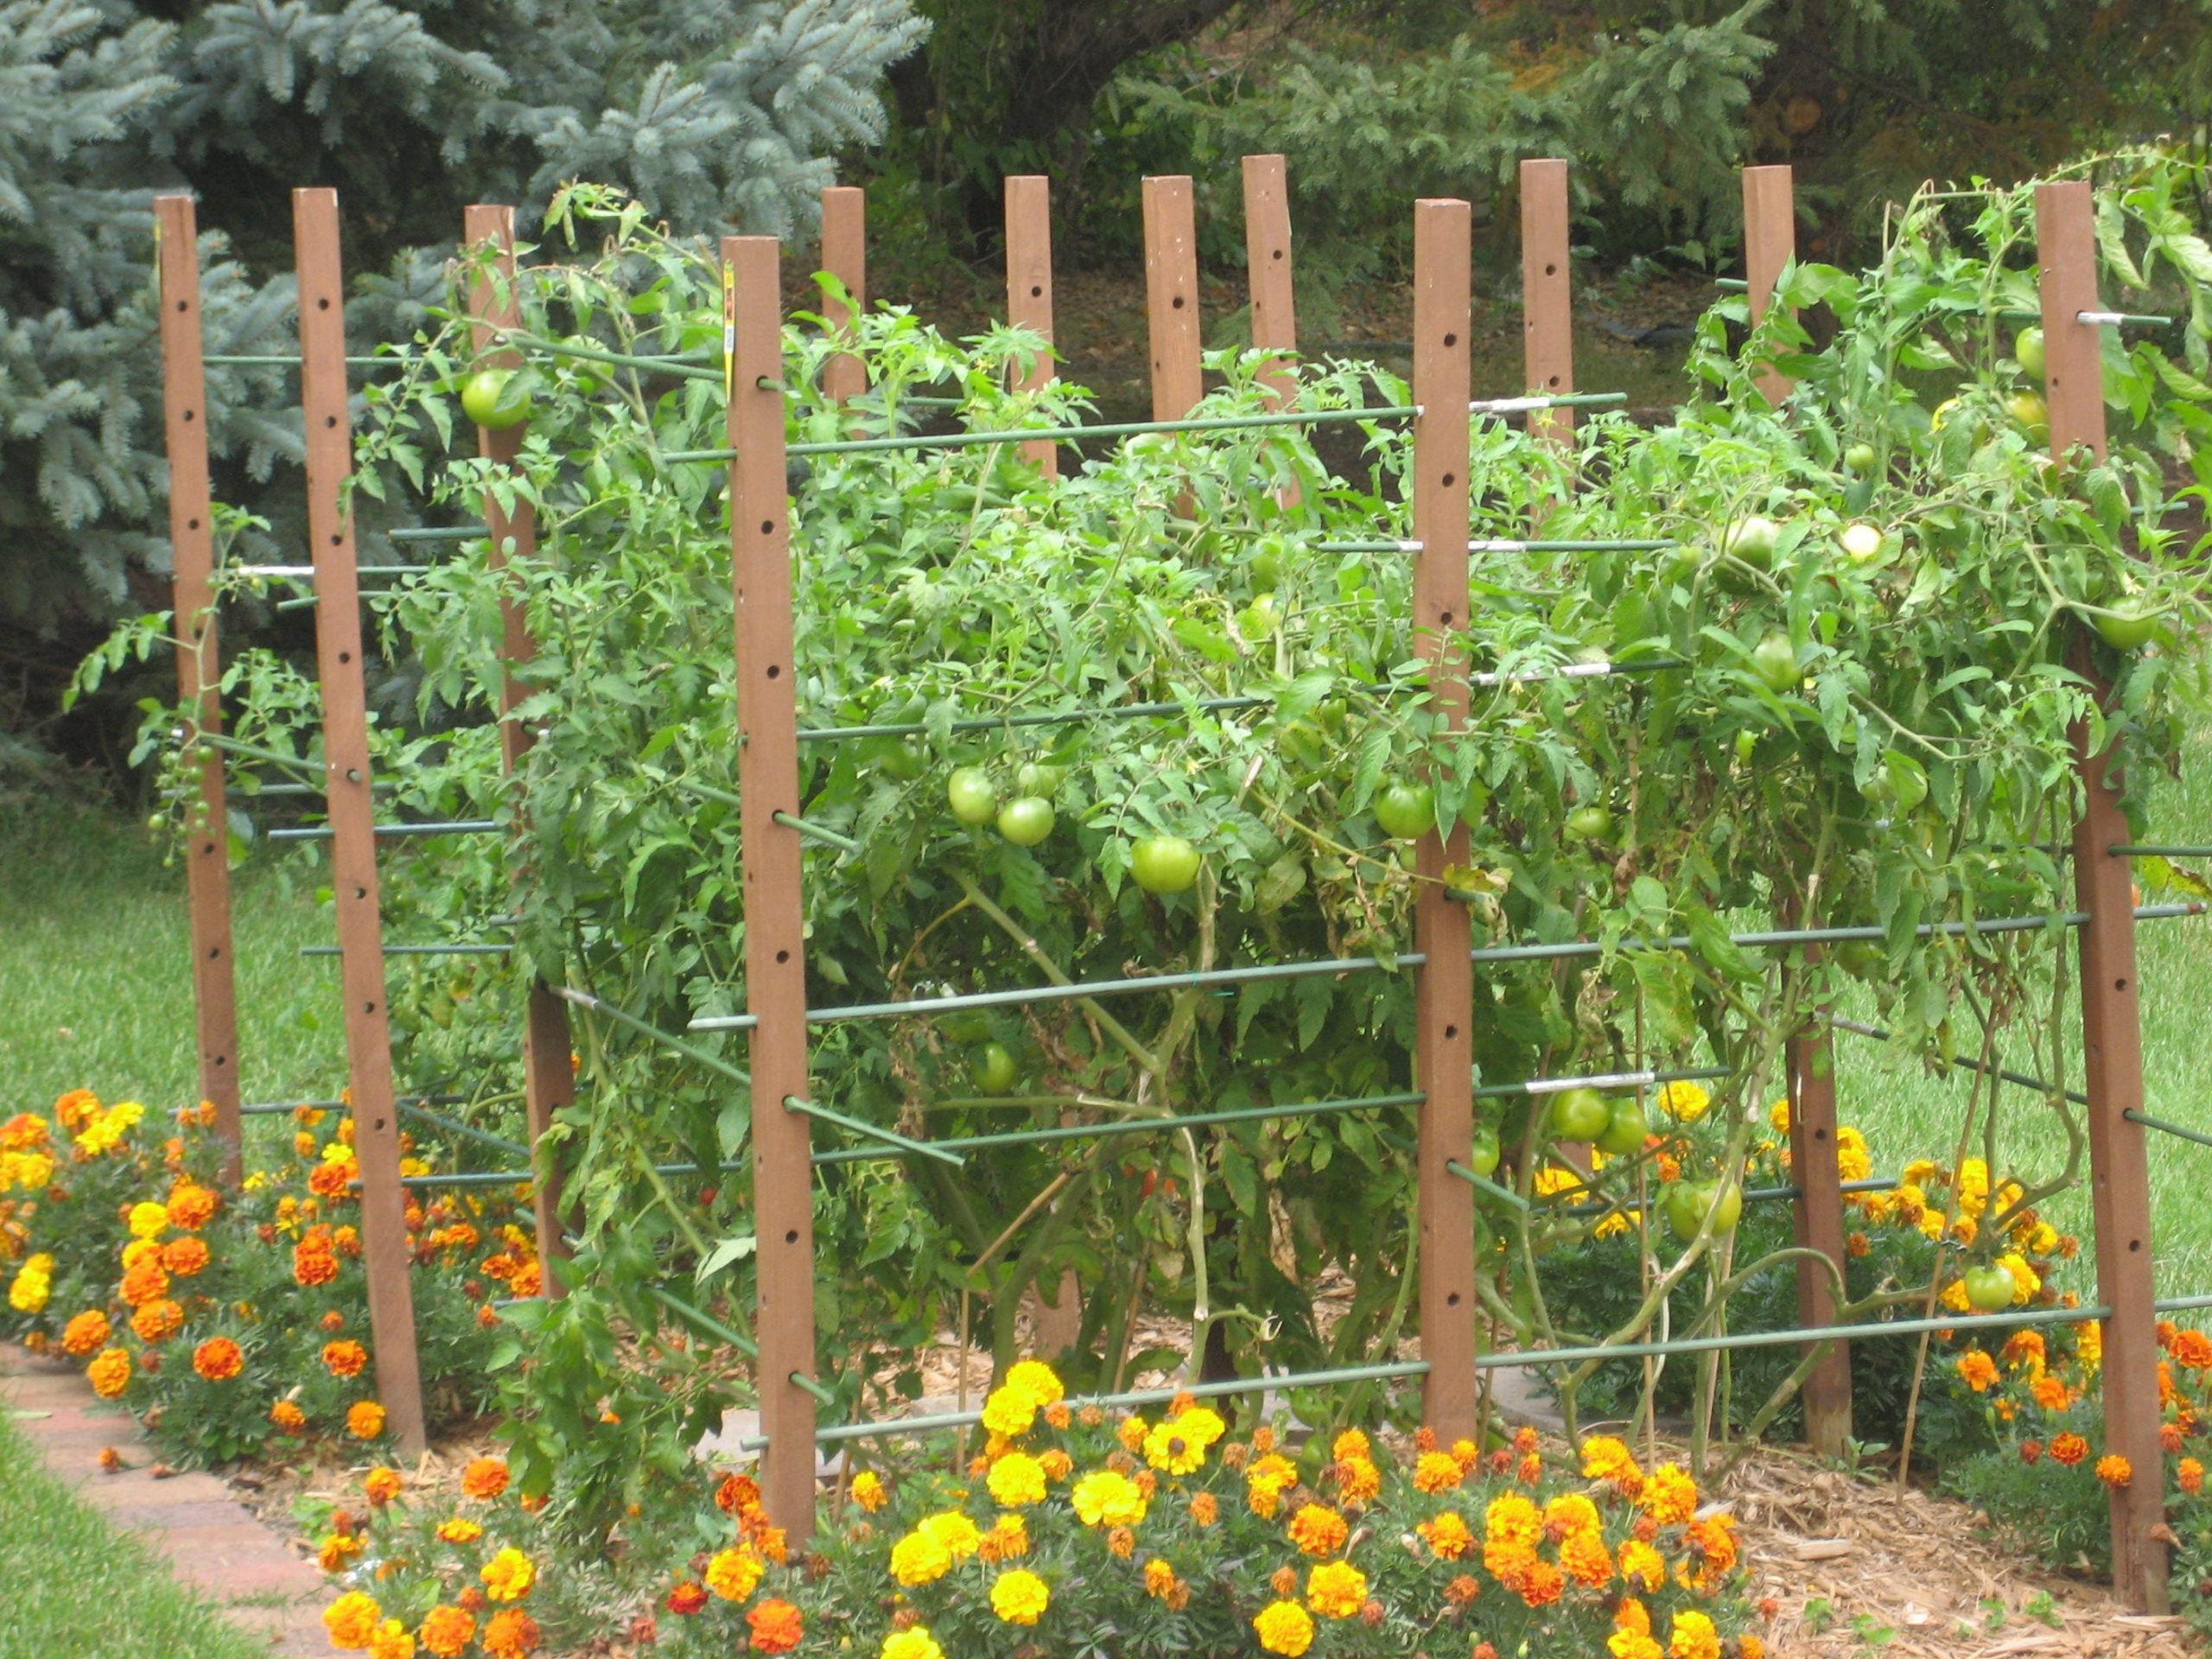 tomato trellis idea growing tomatoes problems garden growing within 10 tomato garden ideas most brilliant as well as beautiful